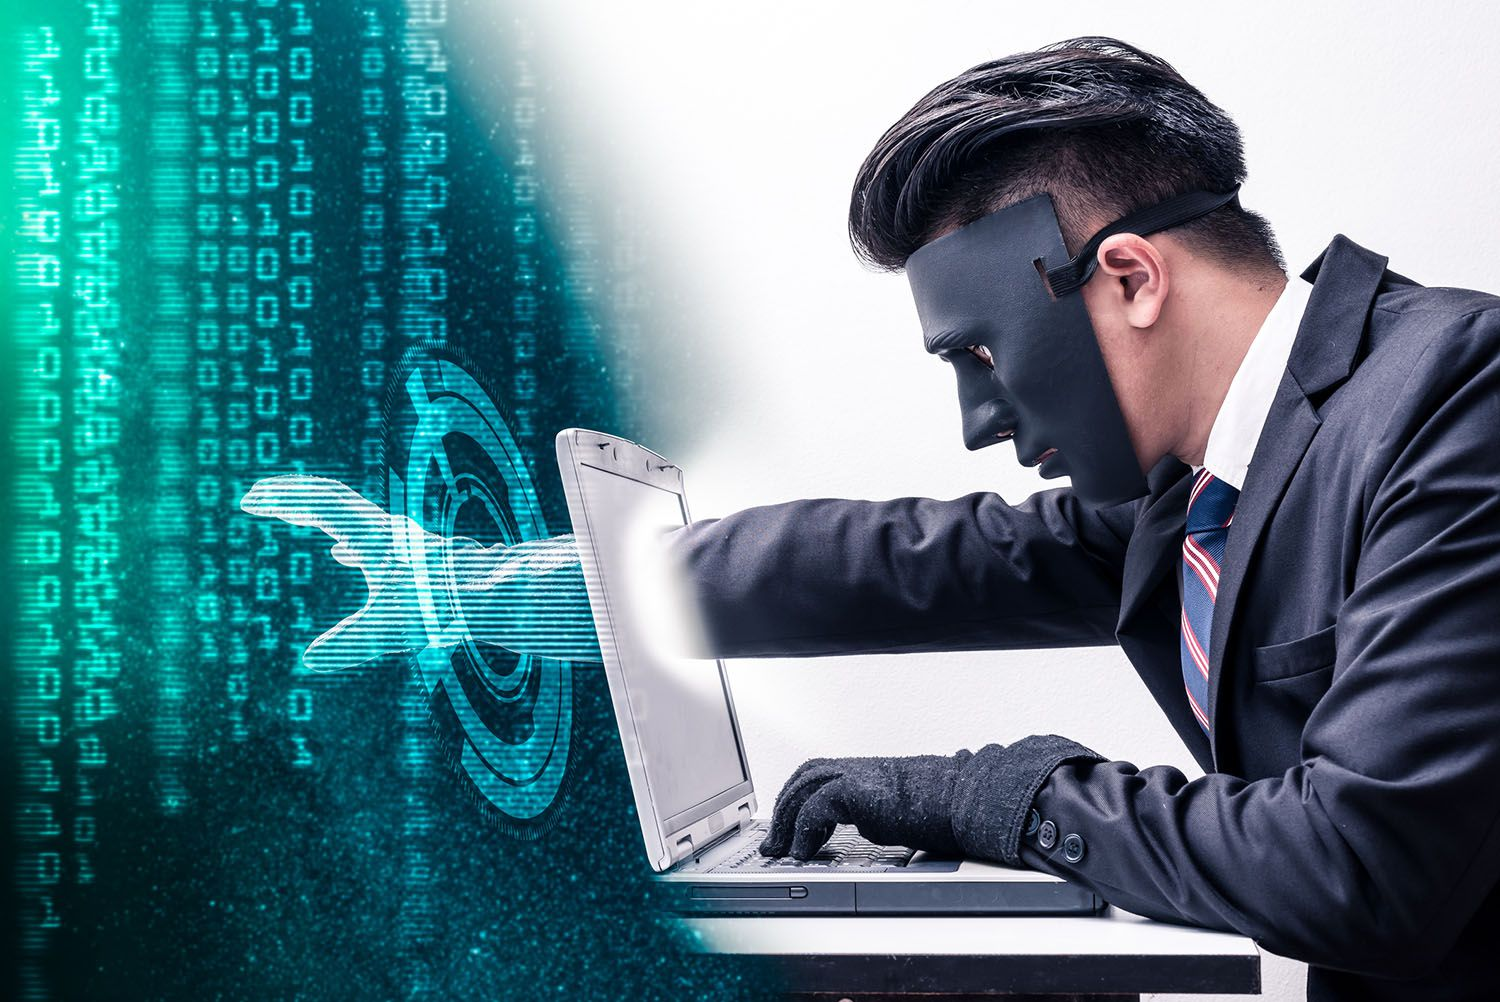 10 Ways Identity Thieves Can Get Your Information